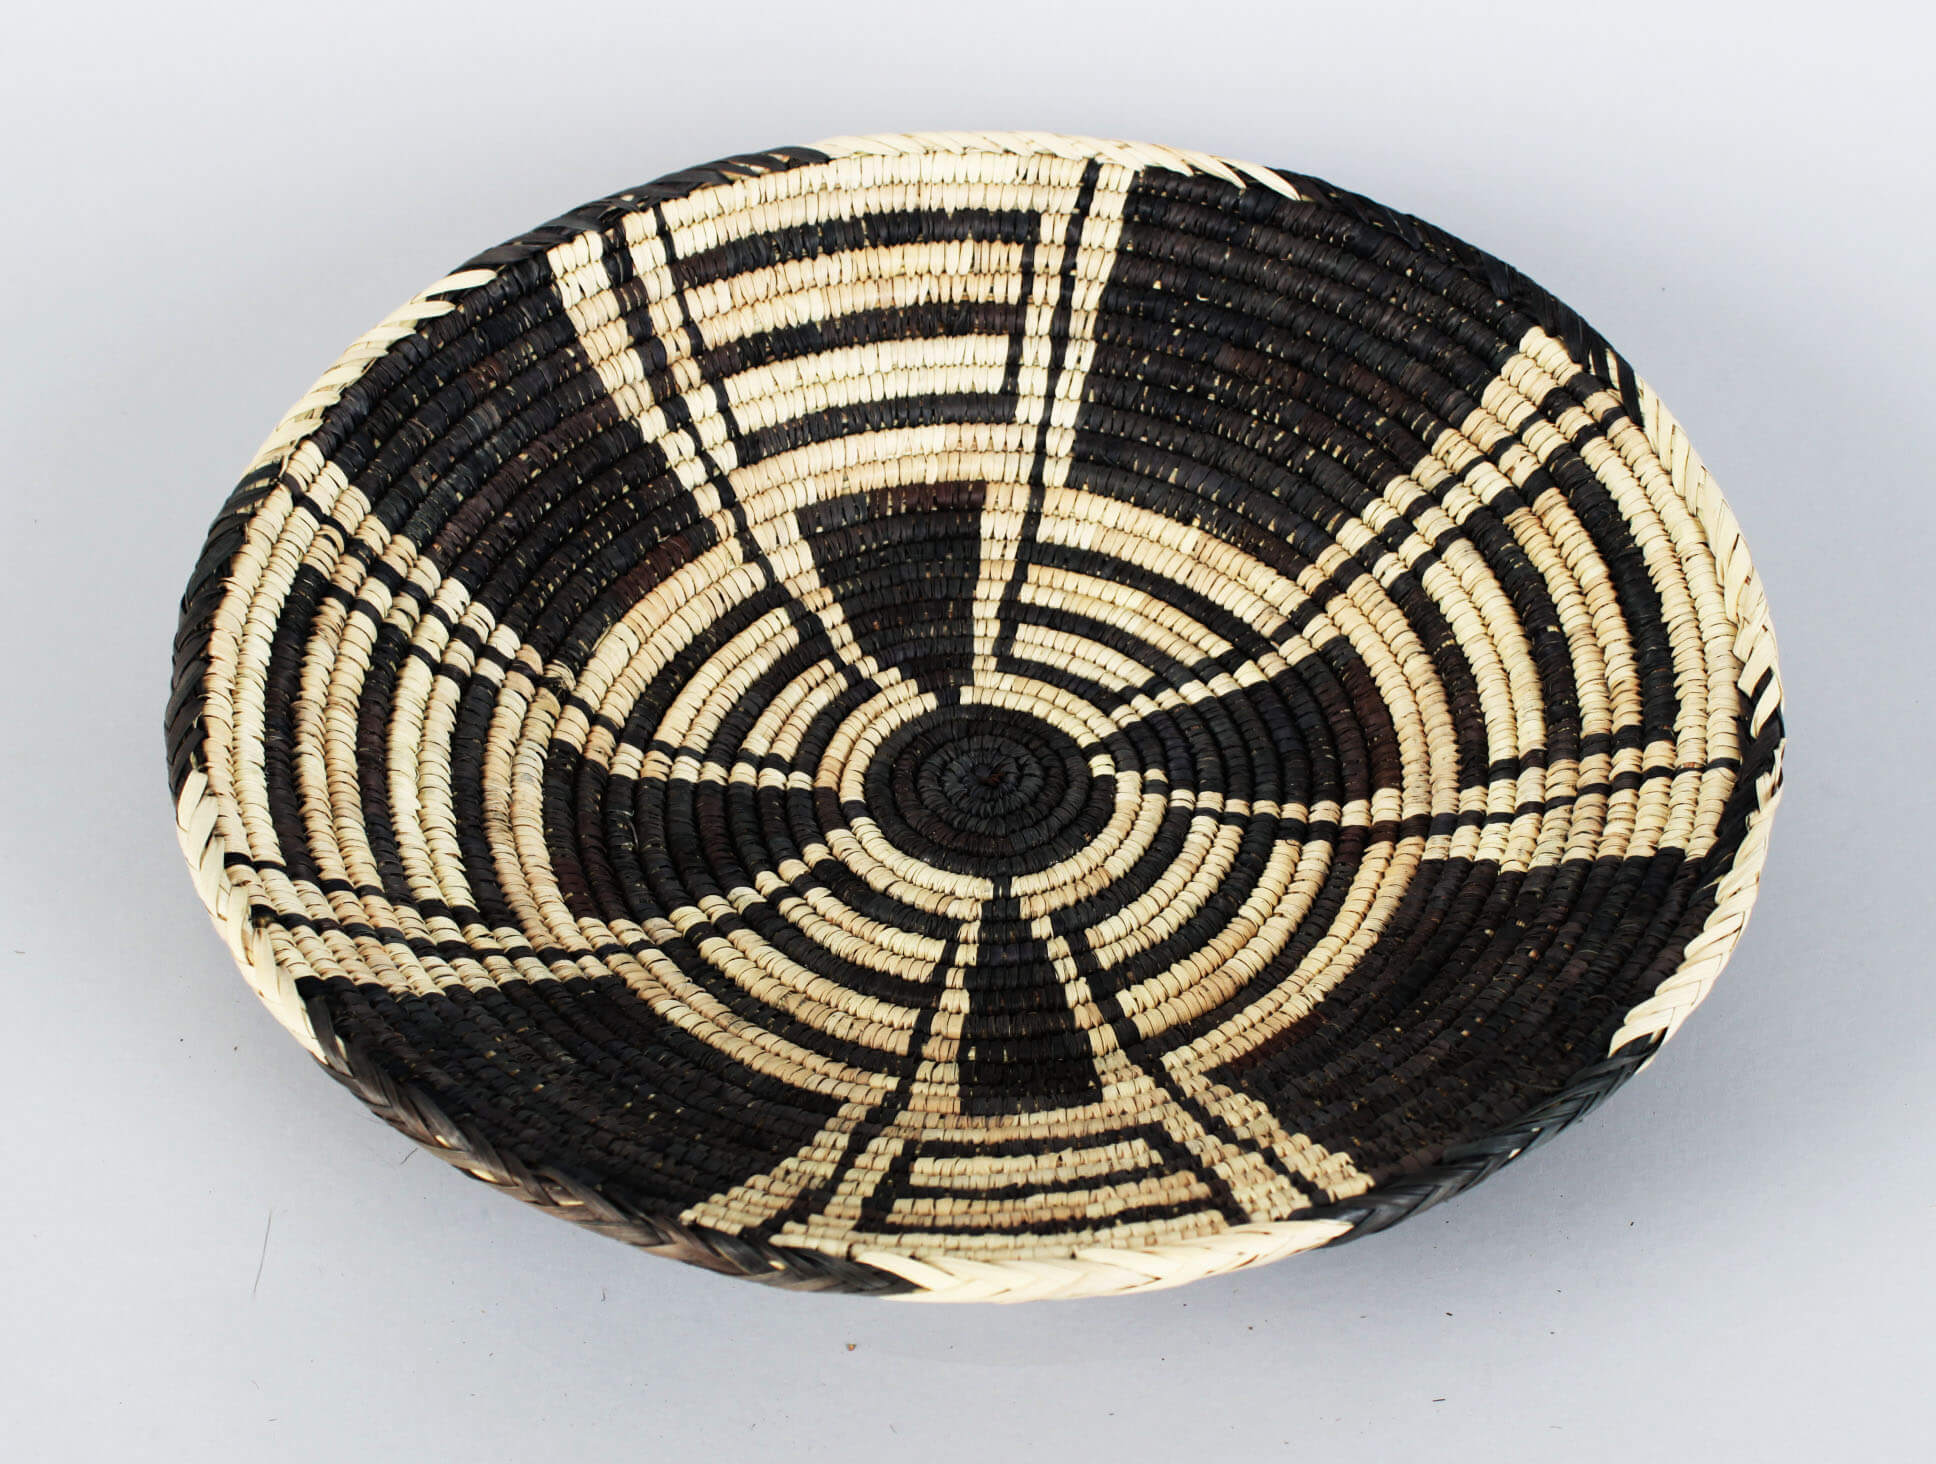 Pima Popoga Native Indian Weaved Parching Tray Basket58041_01